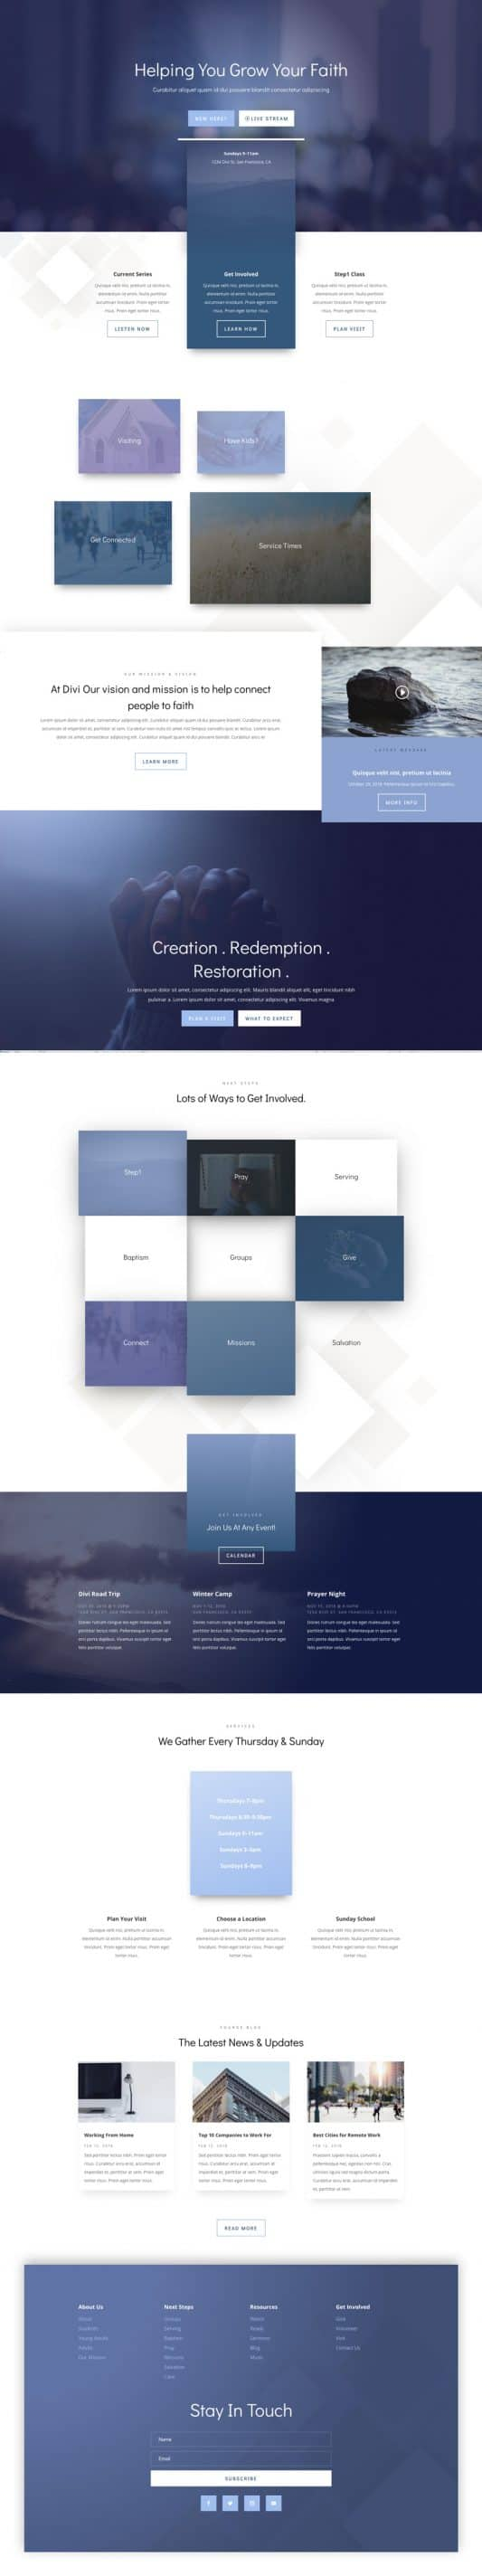 Church Web Design 4